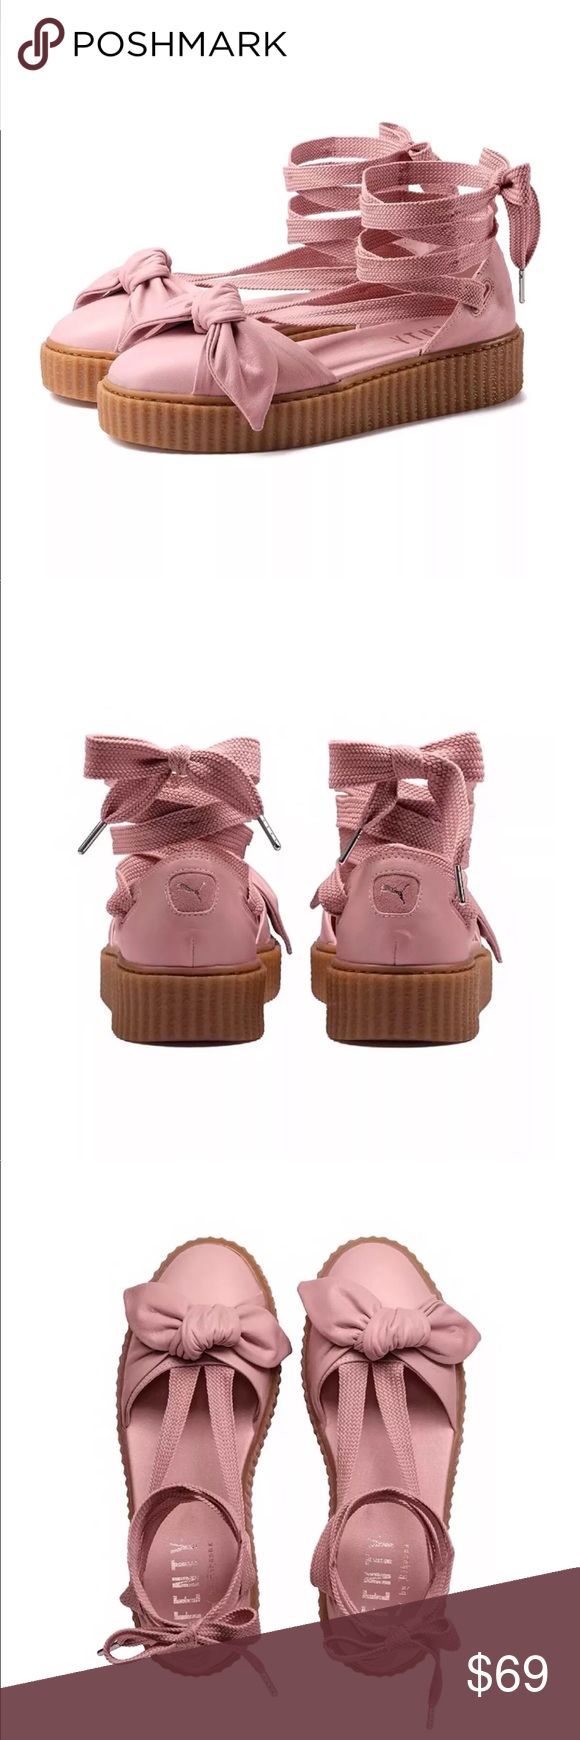 """NWT PUMA FENTY Rihanna BOW CREEPER SANDALS- Pink NWT PUMA FENTY Rihanna BOW CREEPER SANDALS  Color: Pink  Brand new, with tag. Does not include factory box. Espadrilles style laces (30"""" length from toe bed to end of lace) Soft leather upper with a bow near the toes Gum creeper sole  Will ship within one business day following receipt of payment. Ships from smoke free and pet free environment. Puma Shoes Espadrilles"""